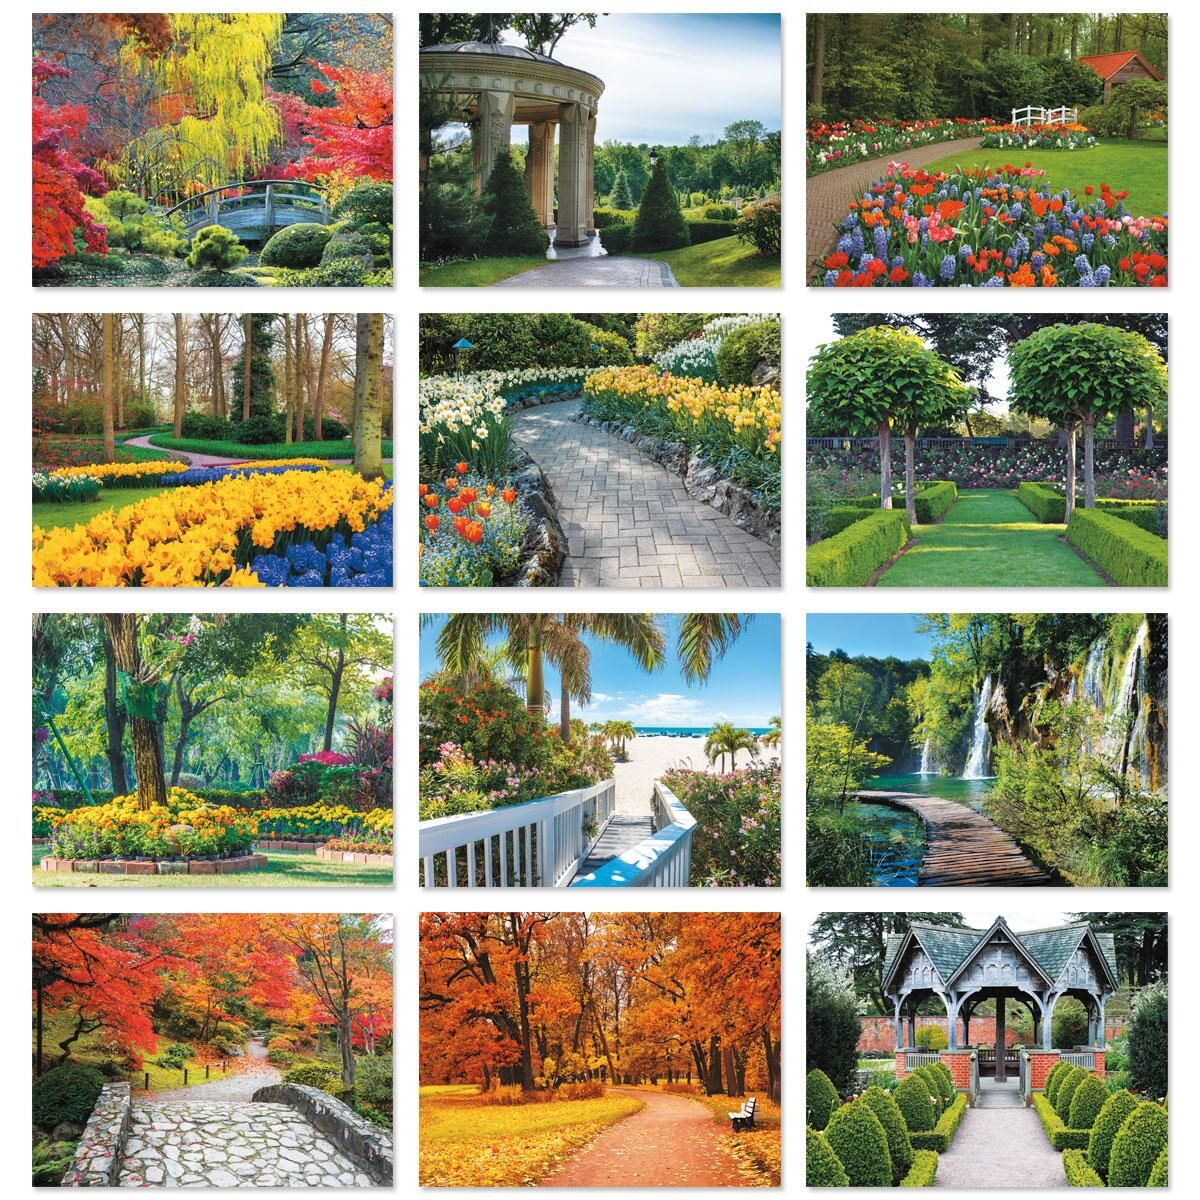 2018 garden path wall calendars current catalog for Gardening 2018 calendar